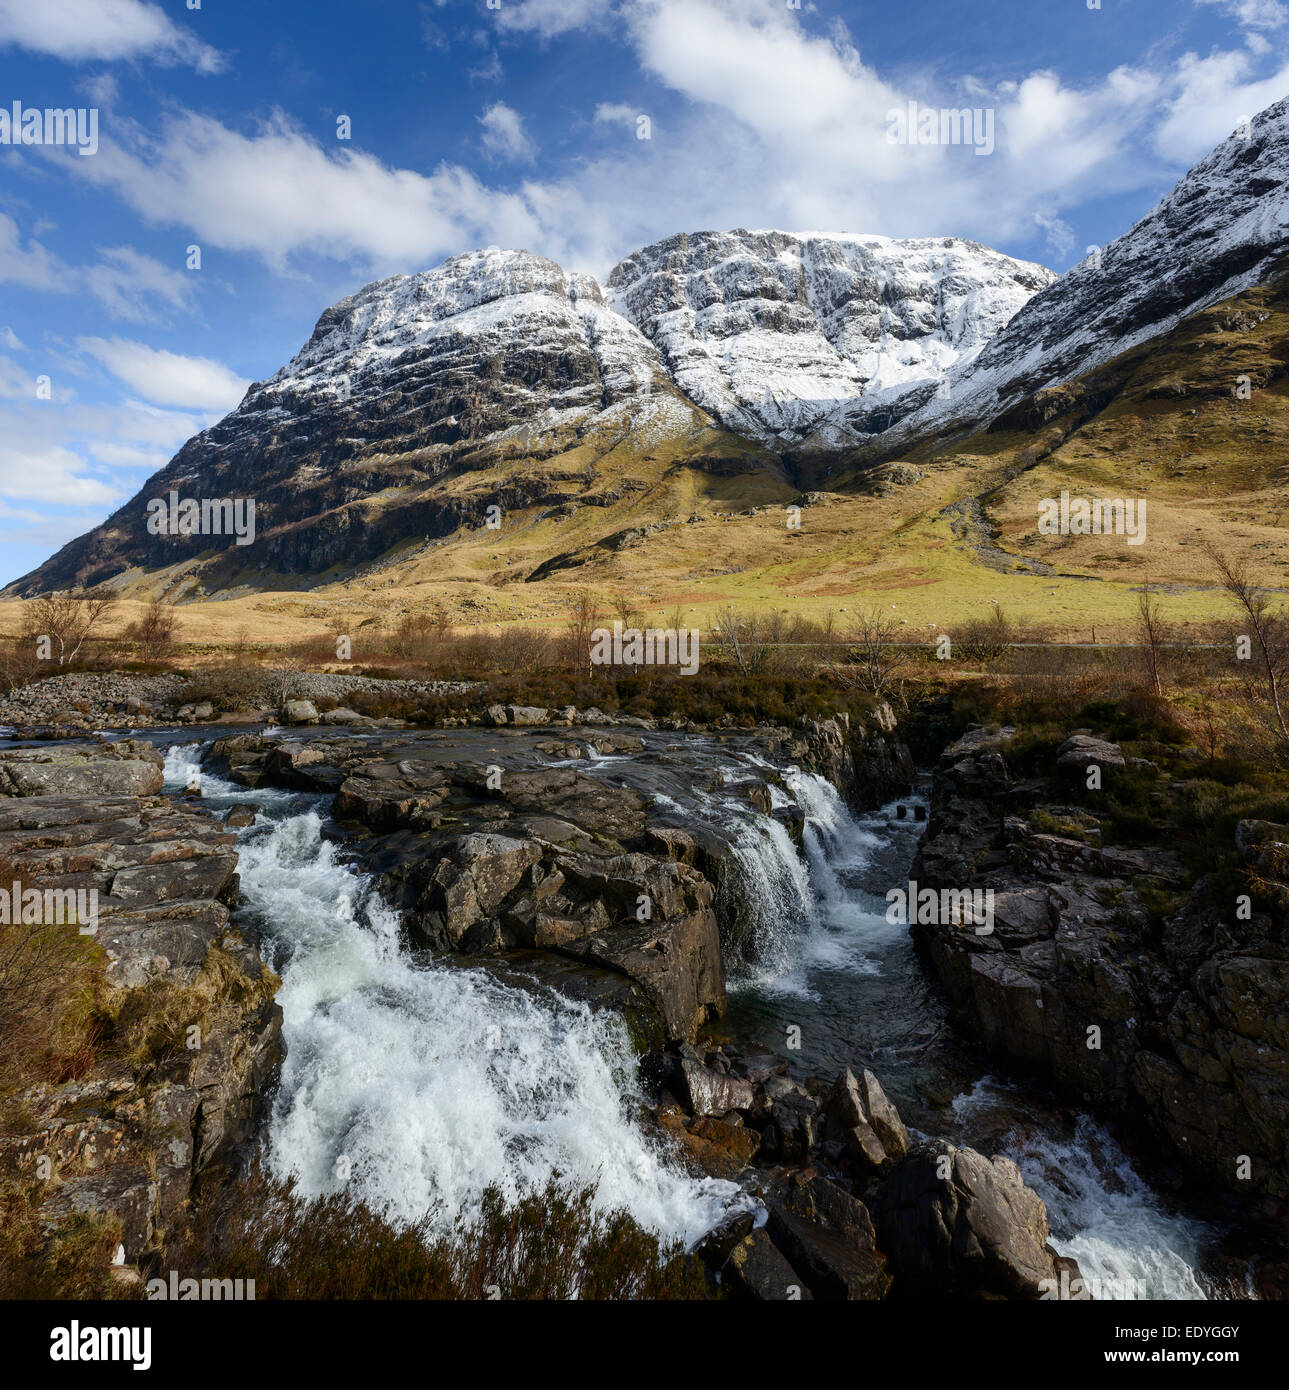 The river Coe with the cliffs of the Aonach Dubh buttress in the background - Stock Image